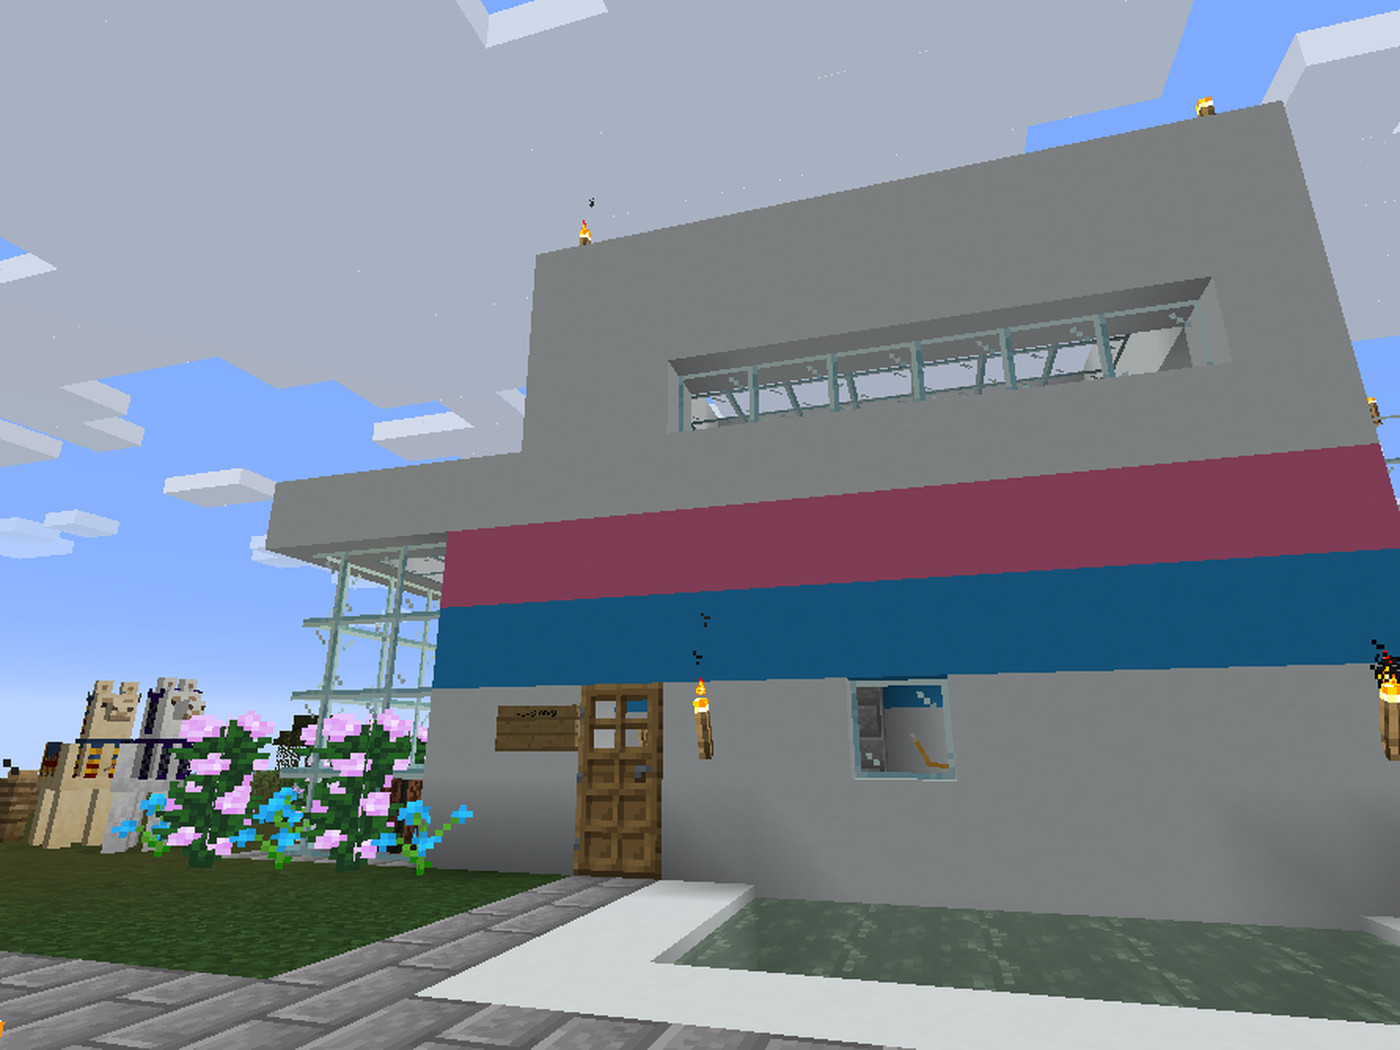 How to build a house in Minecraft - Polygon